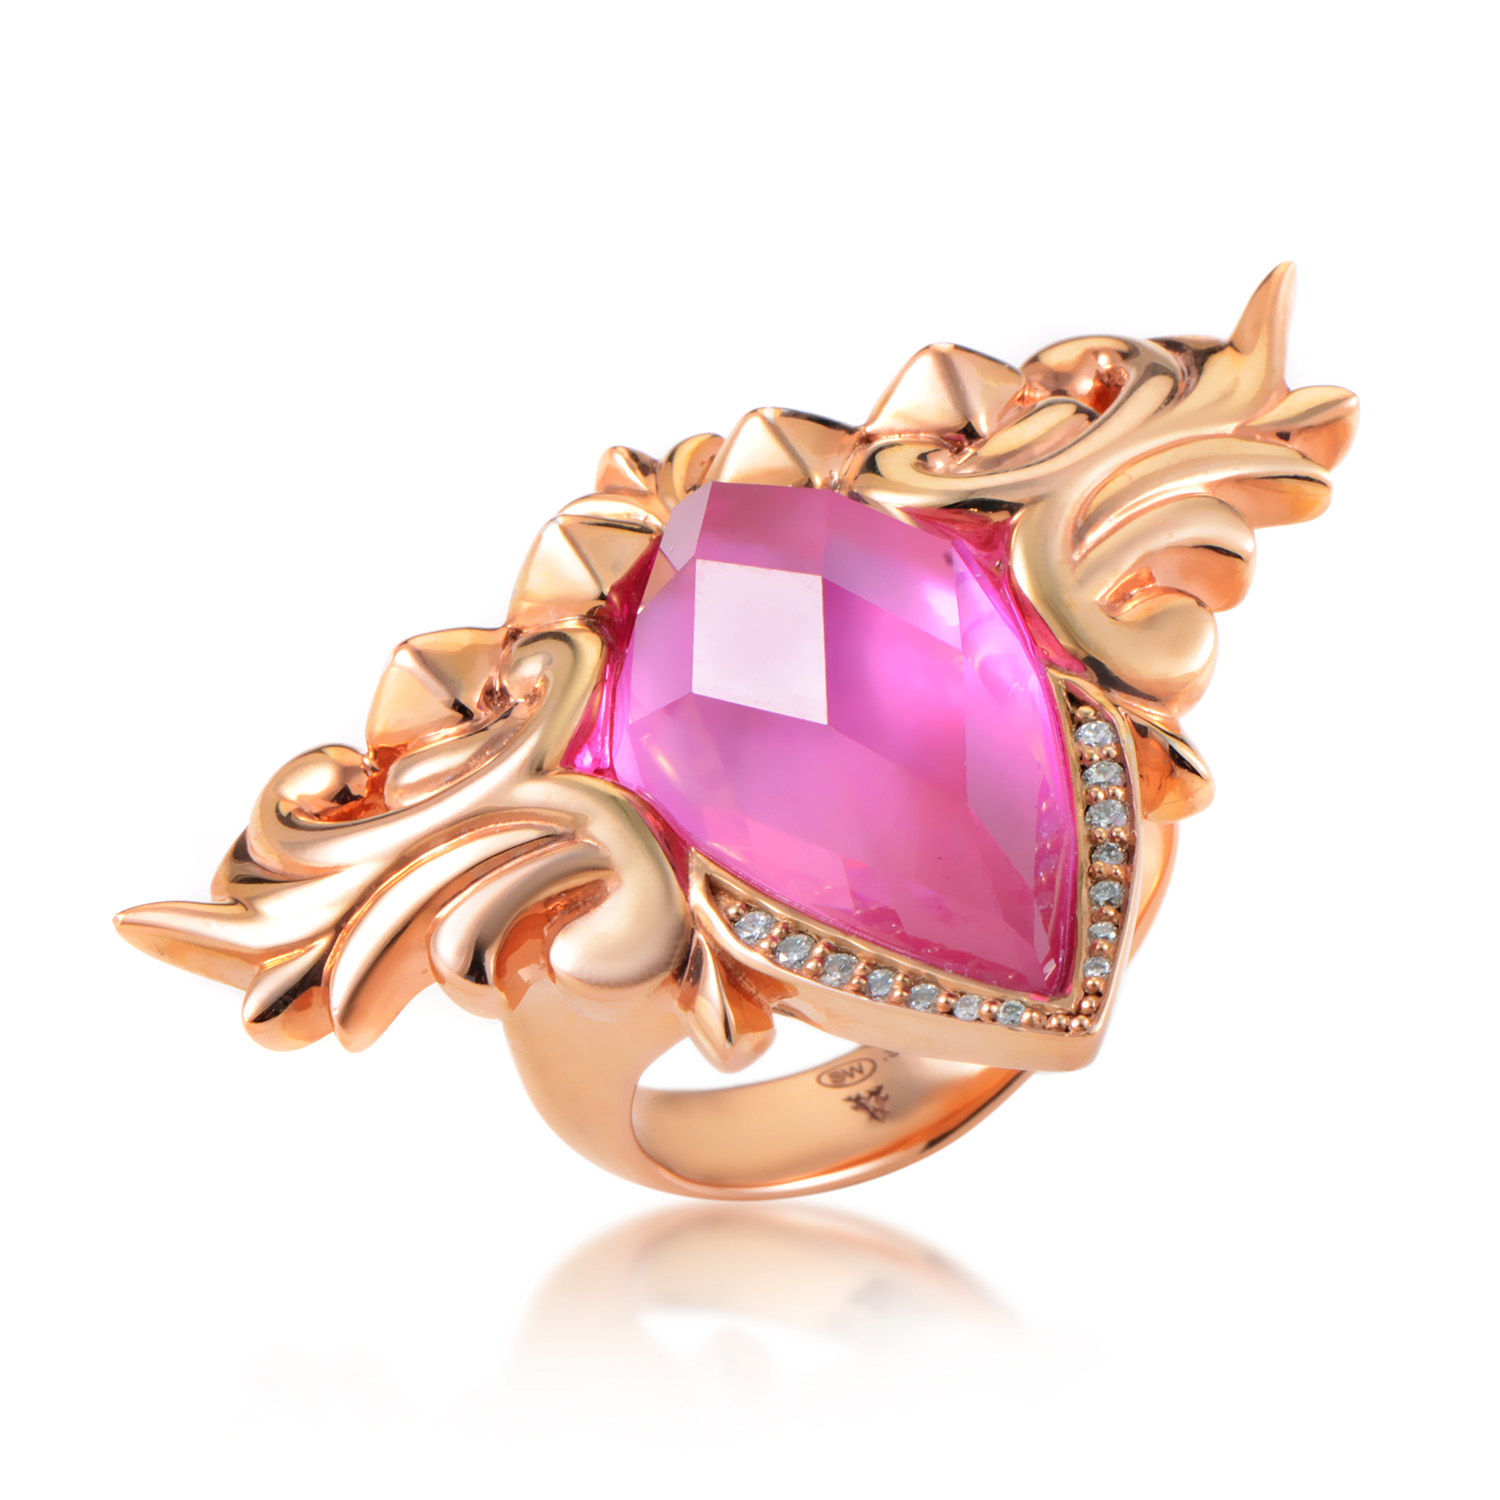 Baroque Superstud Rose Gold Plated Sterling Silver Gemstone Ring